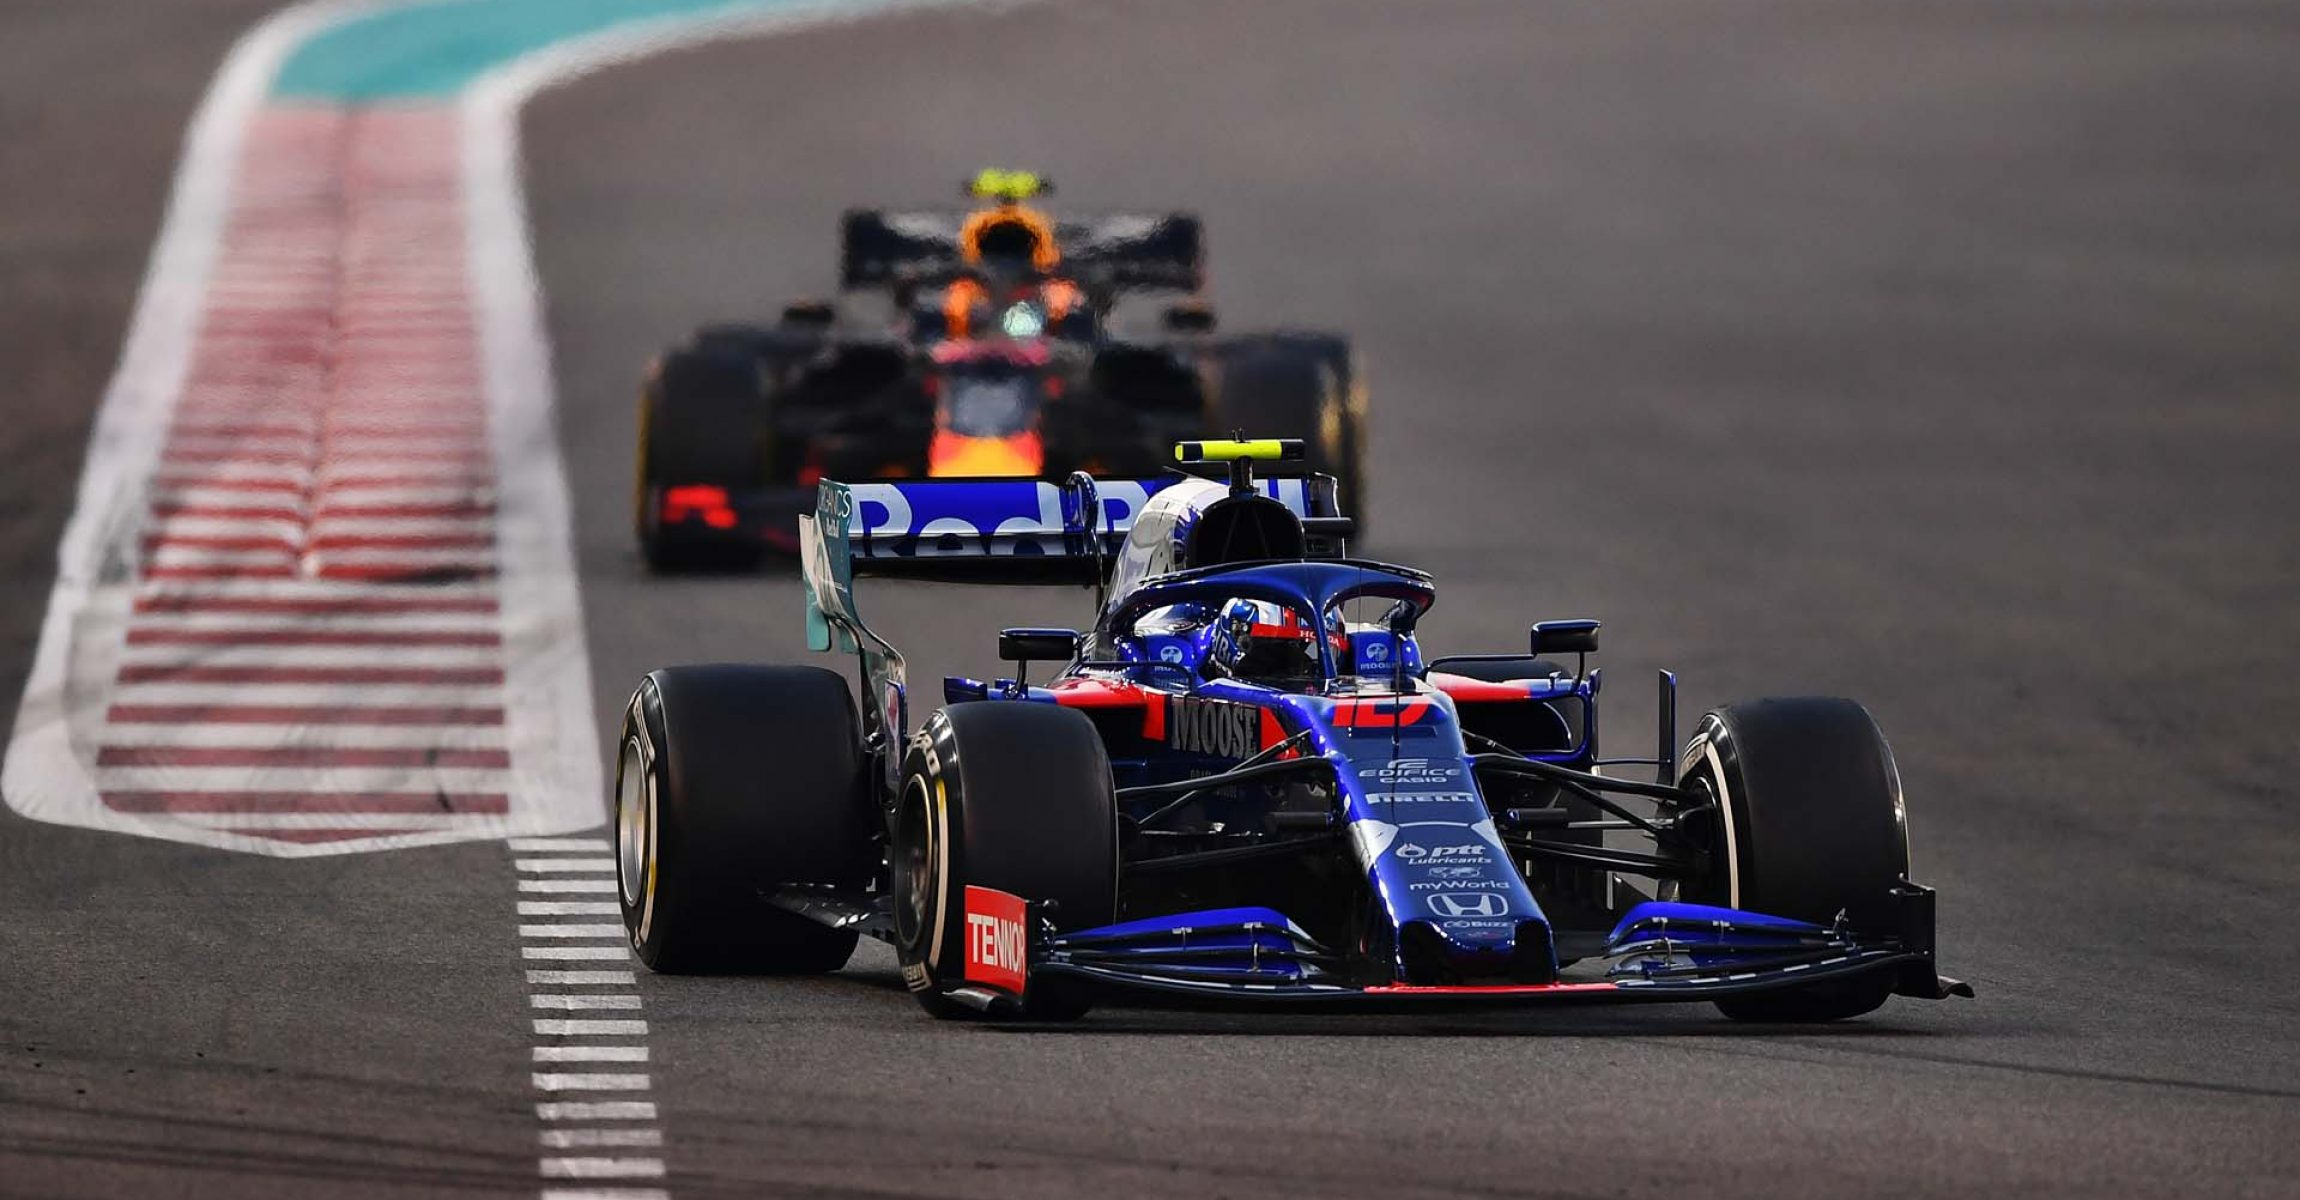 ABU DHABI, UNITED ARAB EMIRATES - DECEMBER 01: Pierre Gasly of France driving the (10) Scuderia Toro Rosso STR14 Honda on track during the F1 Grand Prix of Abu Dhabi at Yas Marina Circuit on December 01, 2019 in Abu Dhabi, United Arab Emirates. (Photo by Clive Mason/Getty Images) // Getty Images / Red Bull Content Pool // AP-22BUAC9792111 // Usage for editorial use only //